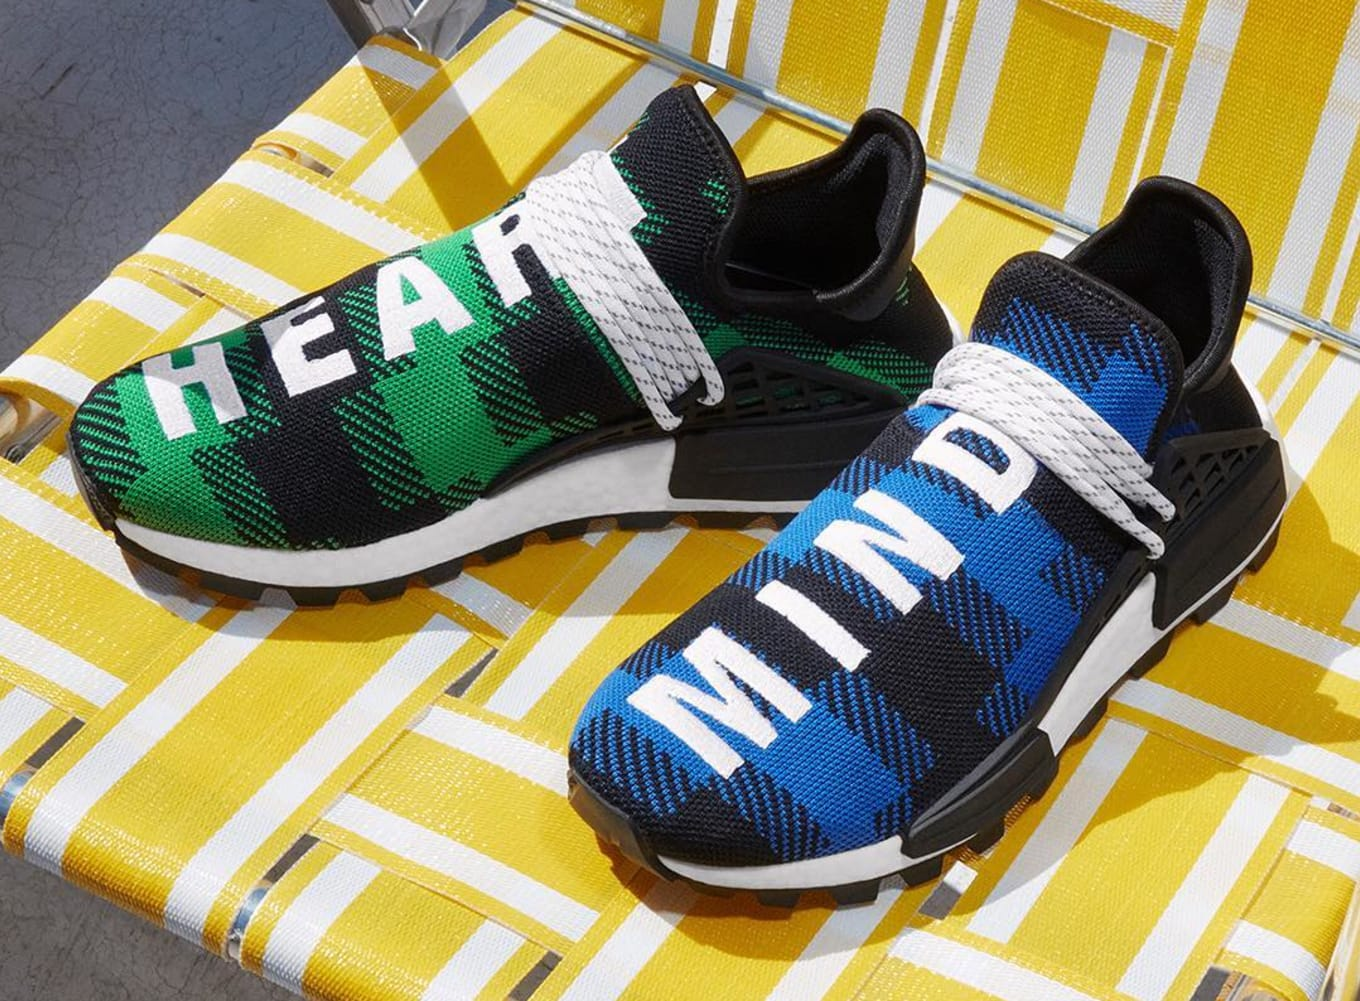 new arrival 8f9b4 5de29 Billionaire Boys Club x Adidas NMD Hu 'Digijack' Collection ...